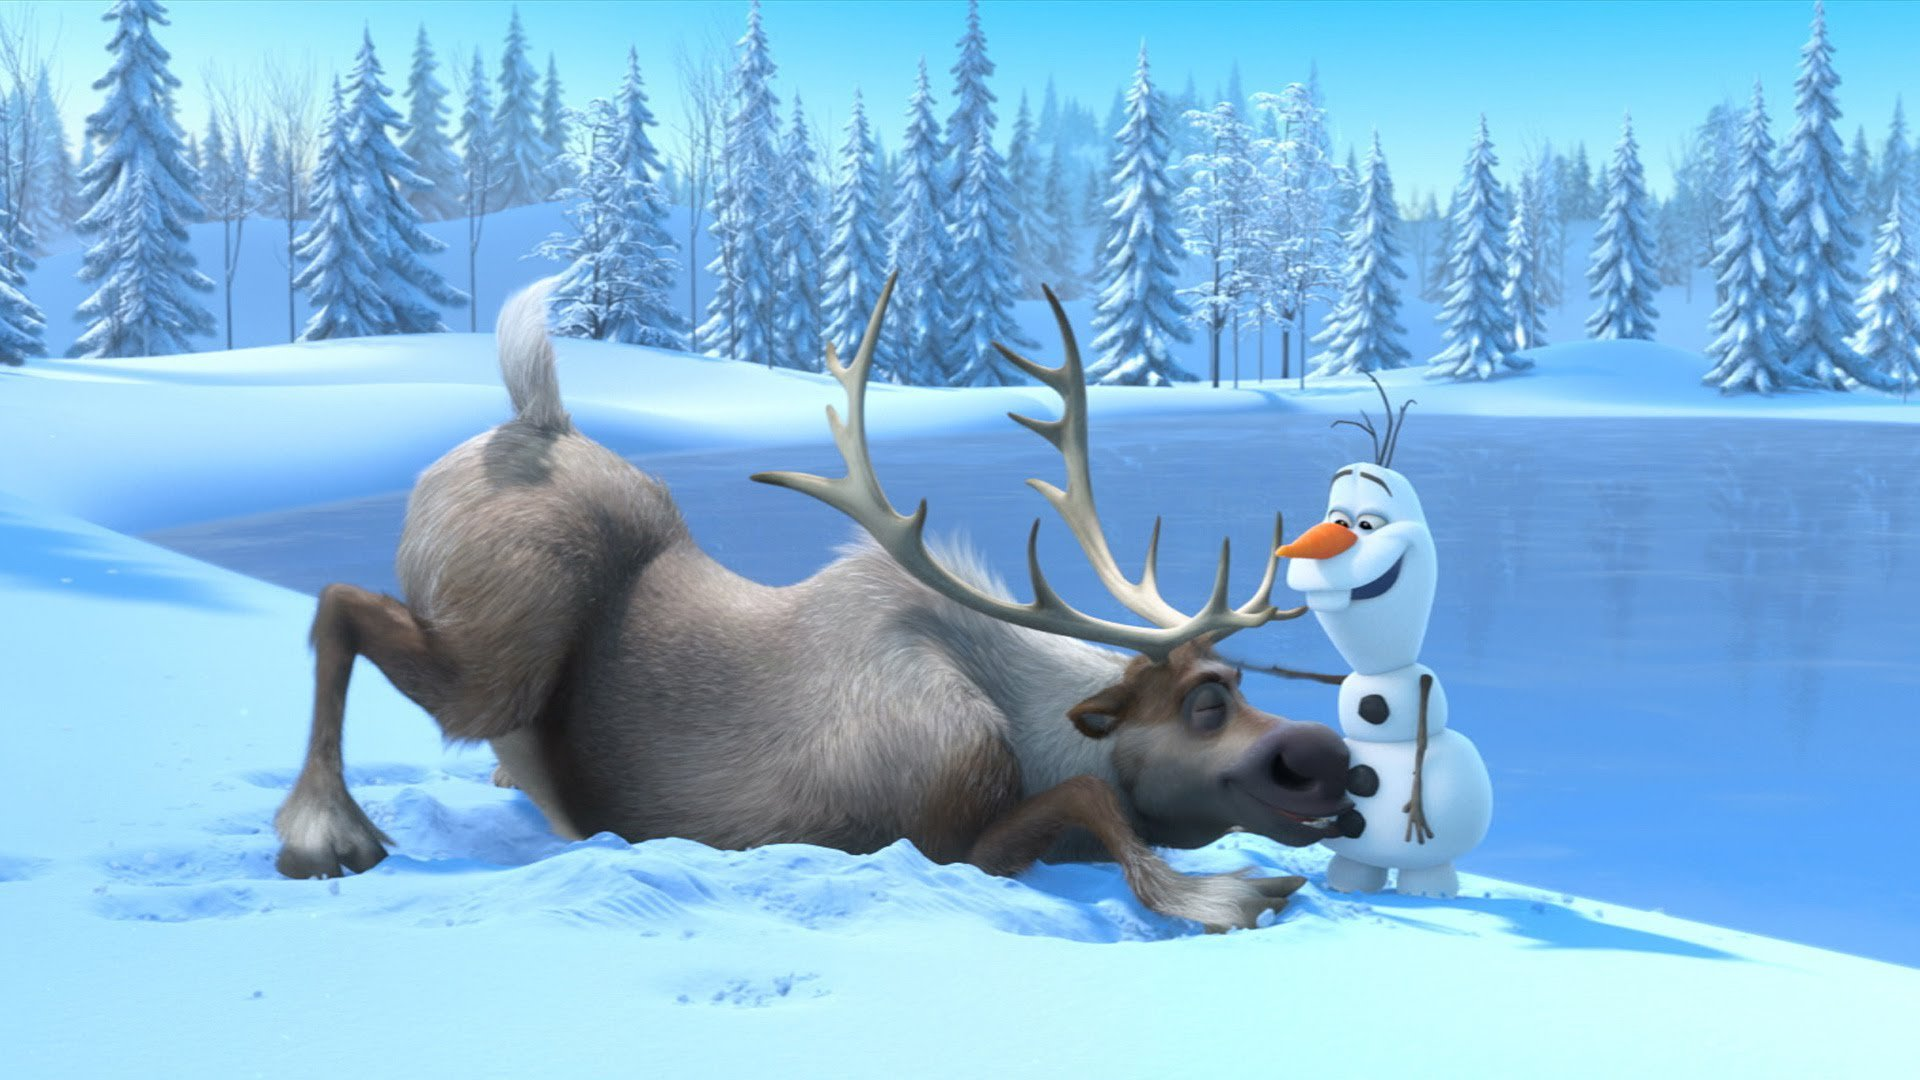 Movie - Frozen  Olaf (Frozen) Sven (Frozen) Frozen (Movie) Wallpaper